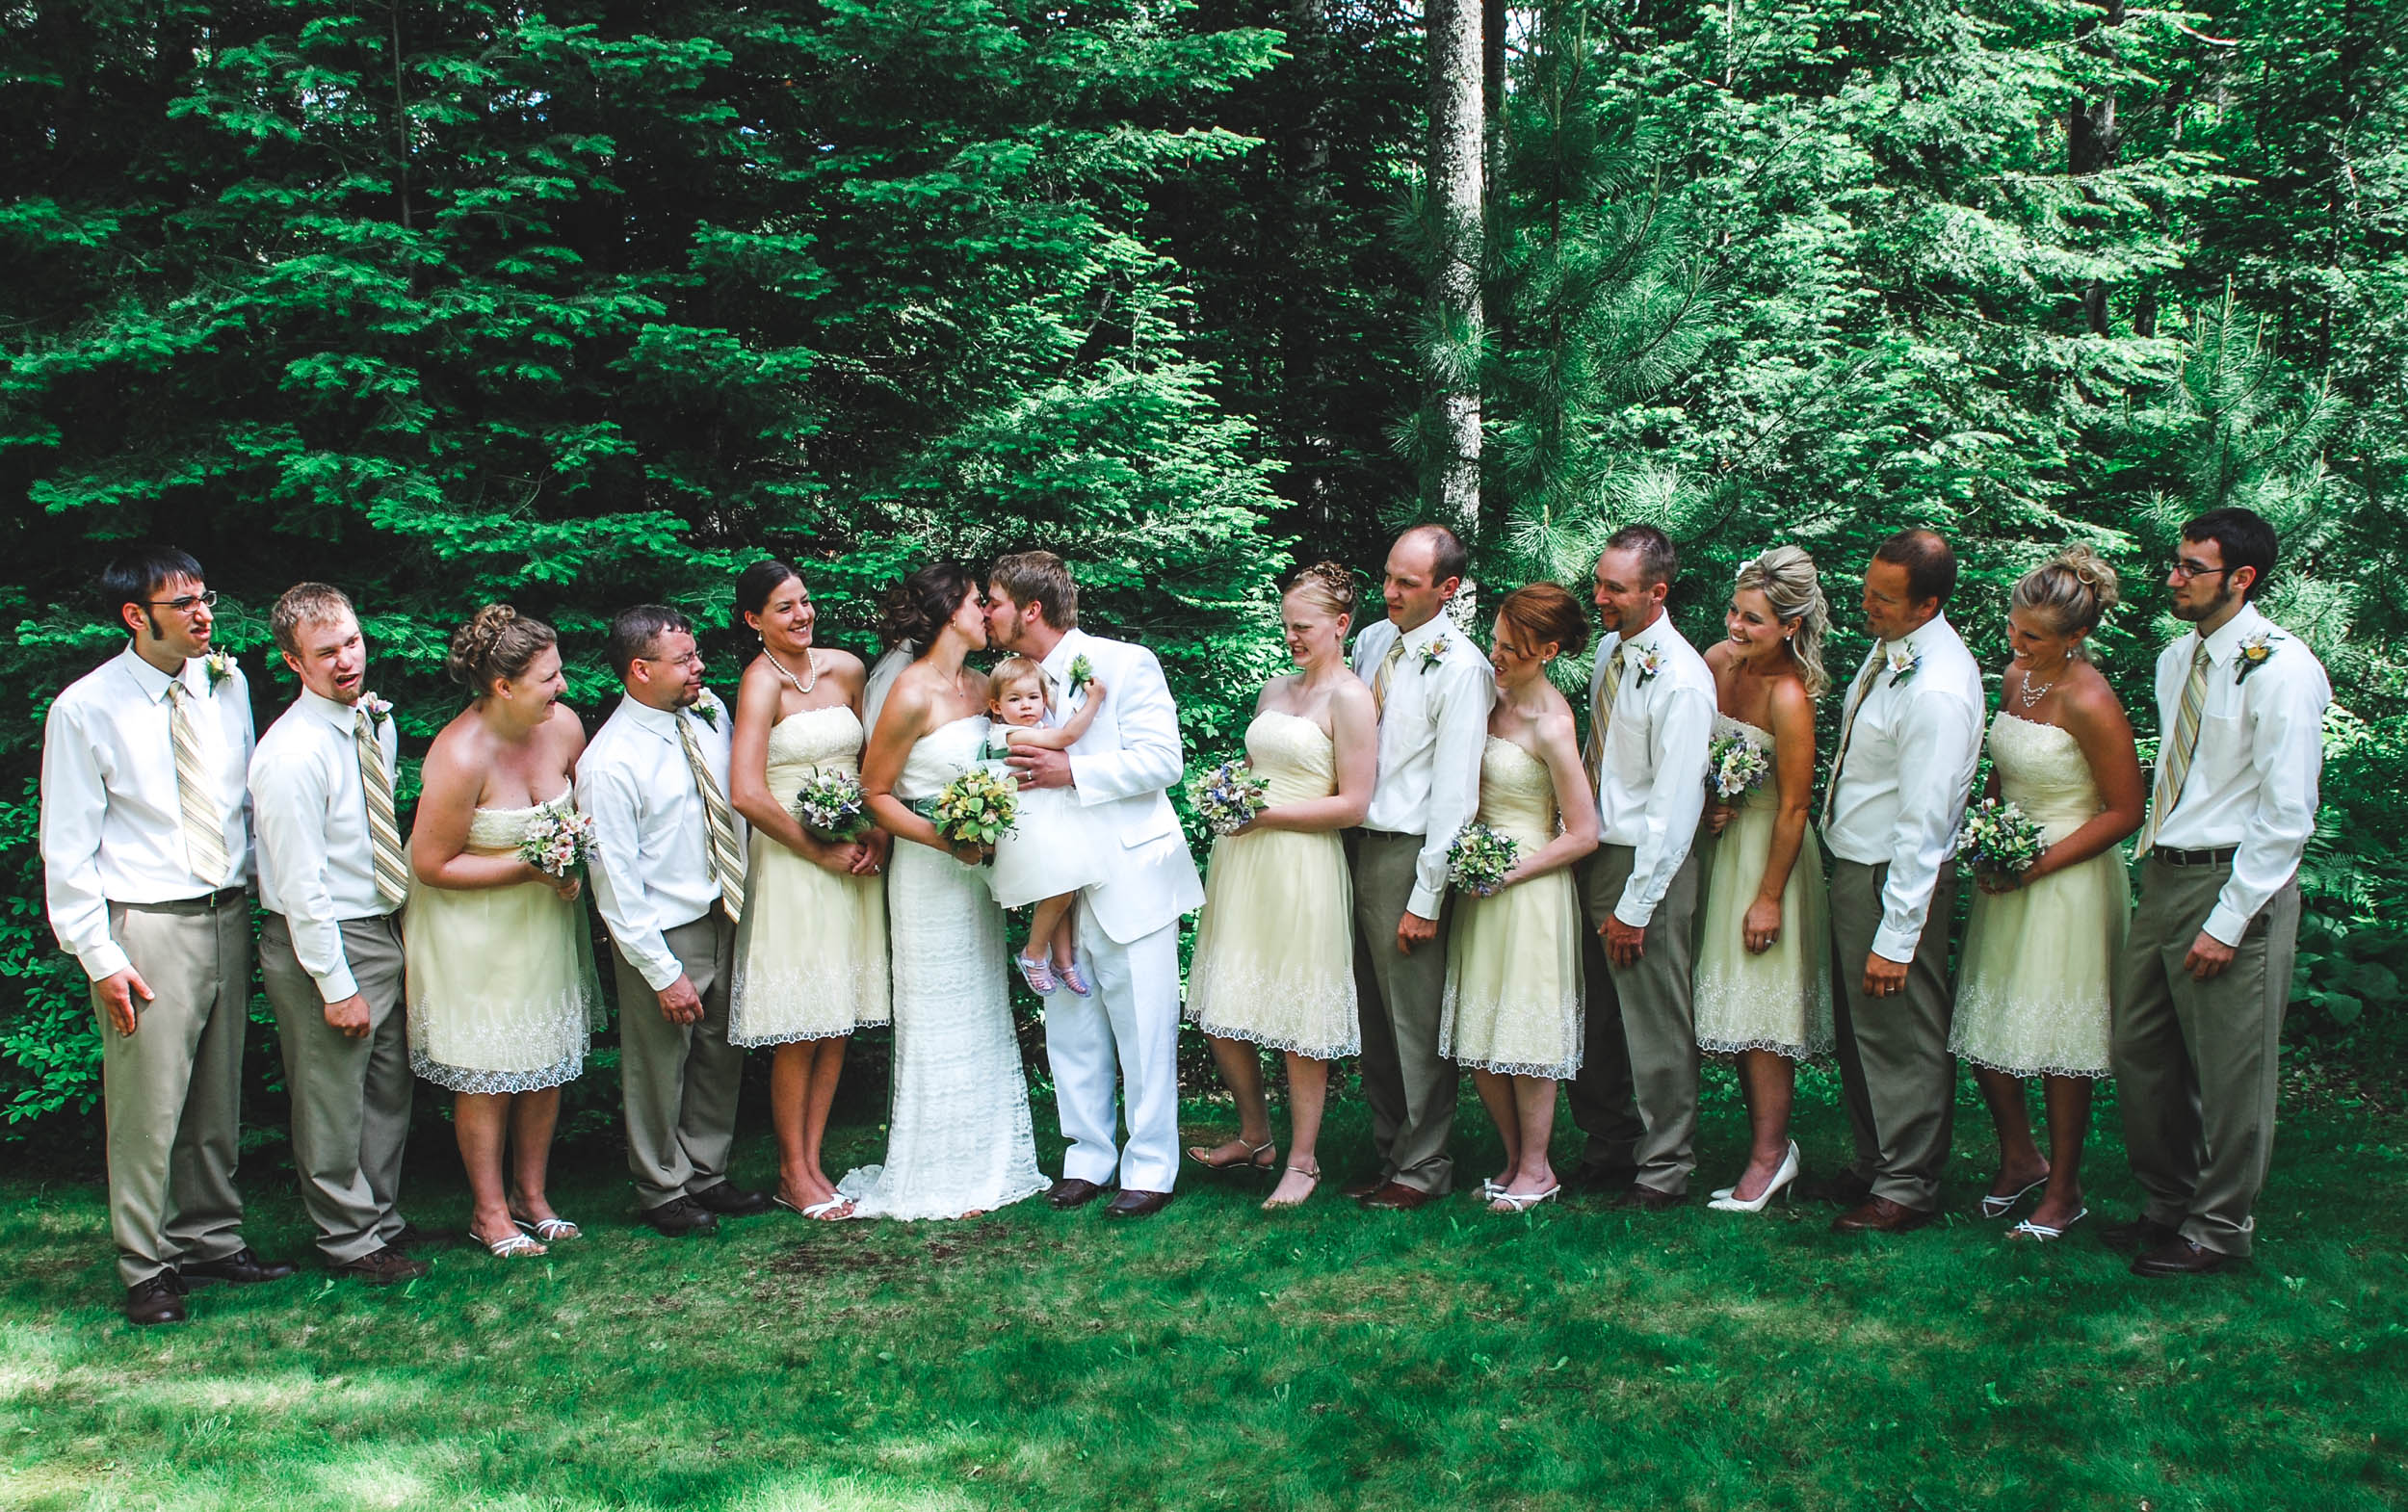 Funny wedding party photo after outdoor wedding